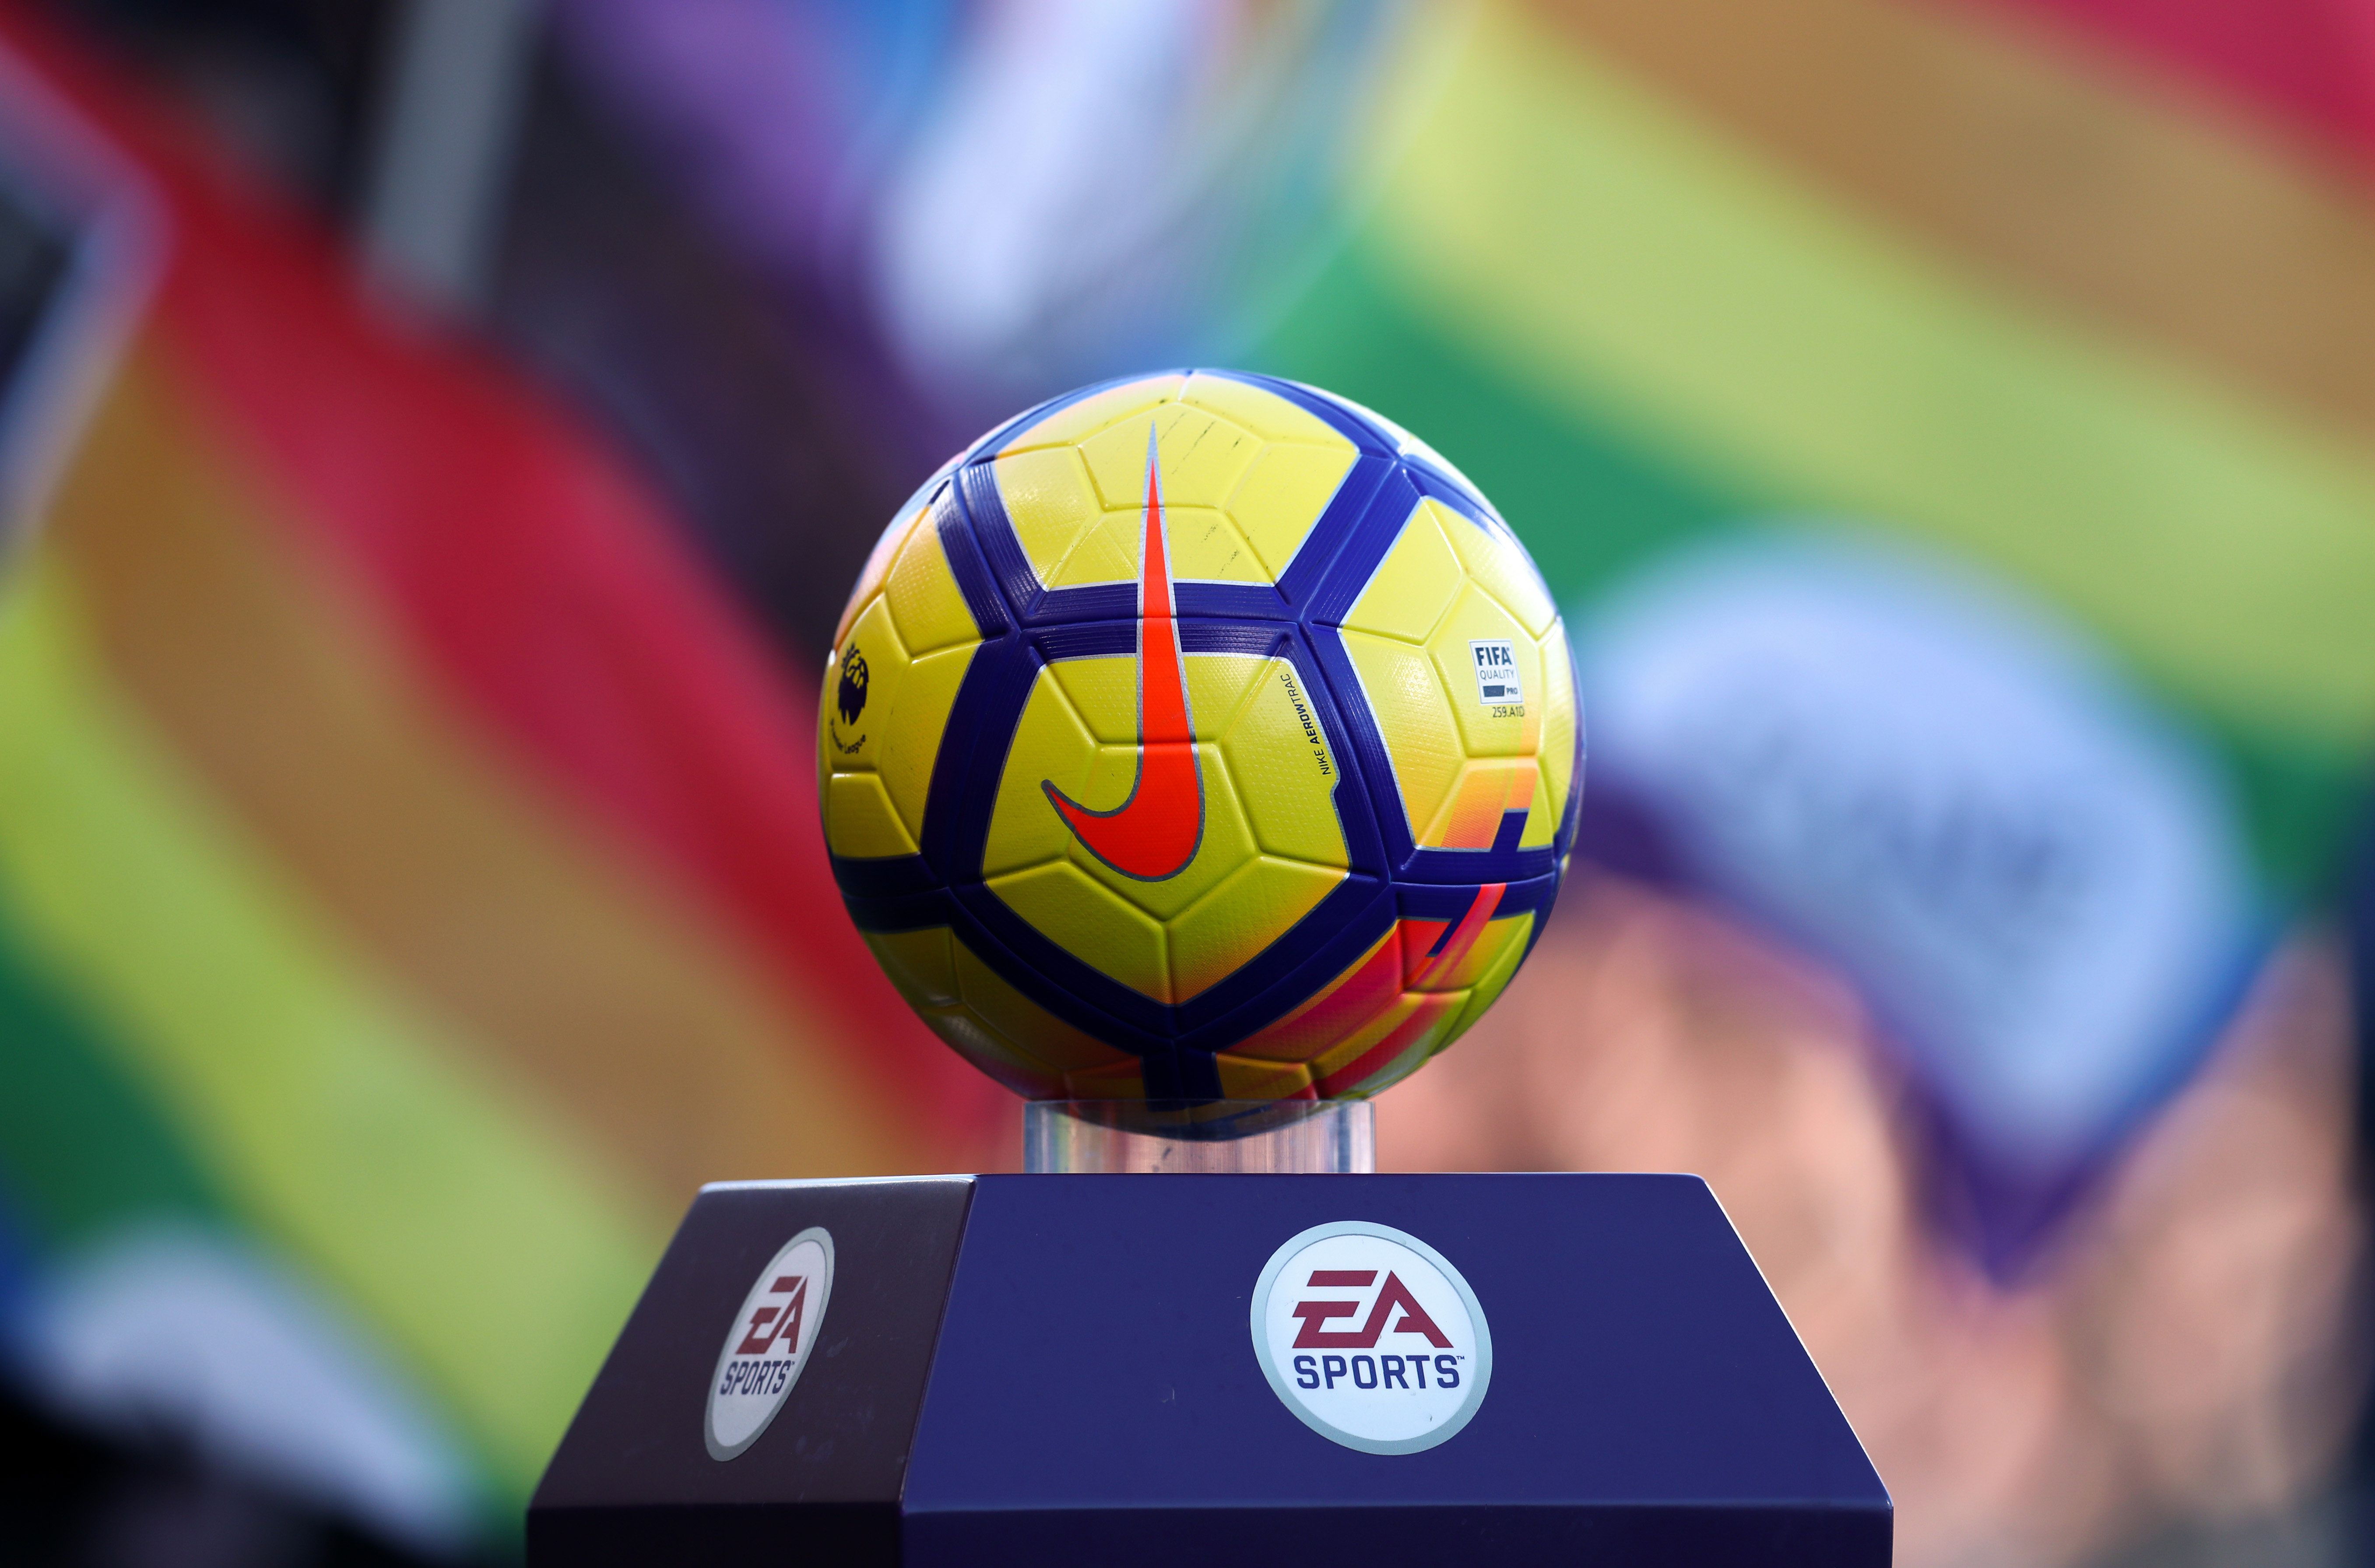 BOURNEMOUTH, ENGLAND - FEBRUARY 24: The Nike match ball infront of rainbow flags during the Premier League match between AFC Bournemouth and Newcastle United at Vitality Stadium on February 24, 2018 in Bournemouth, England. (Photo by Catherine Ivill/Getty Images)